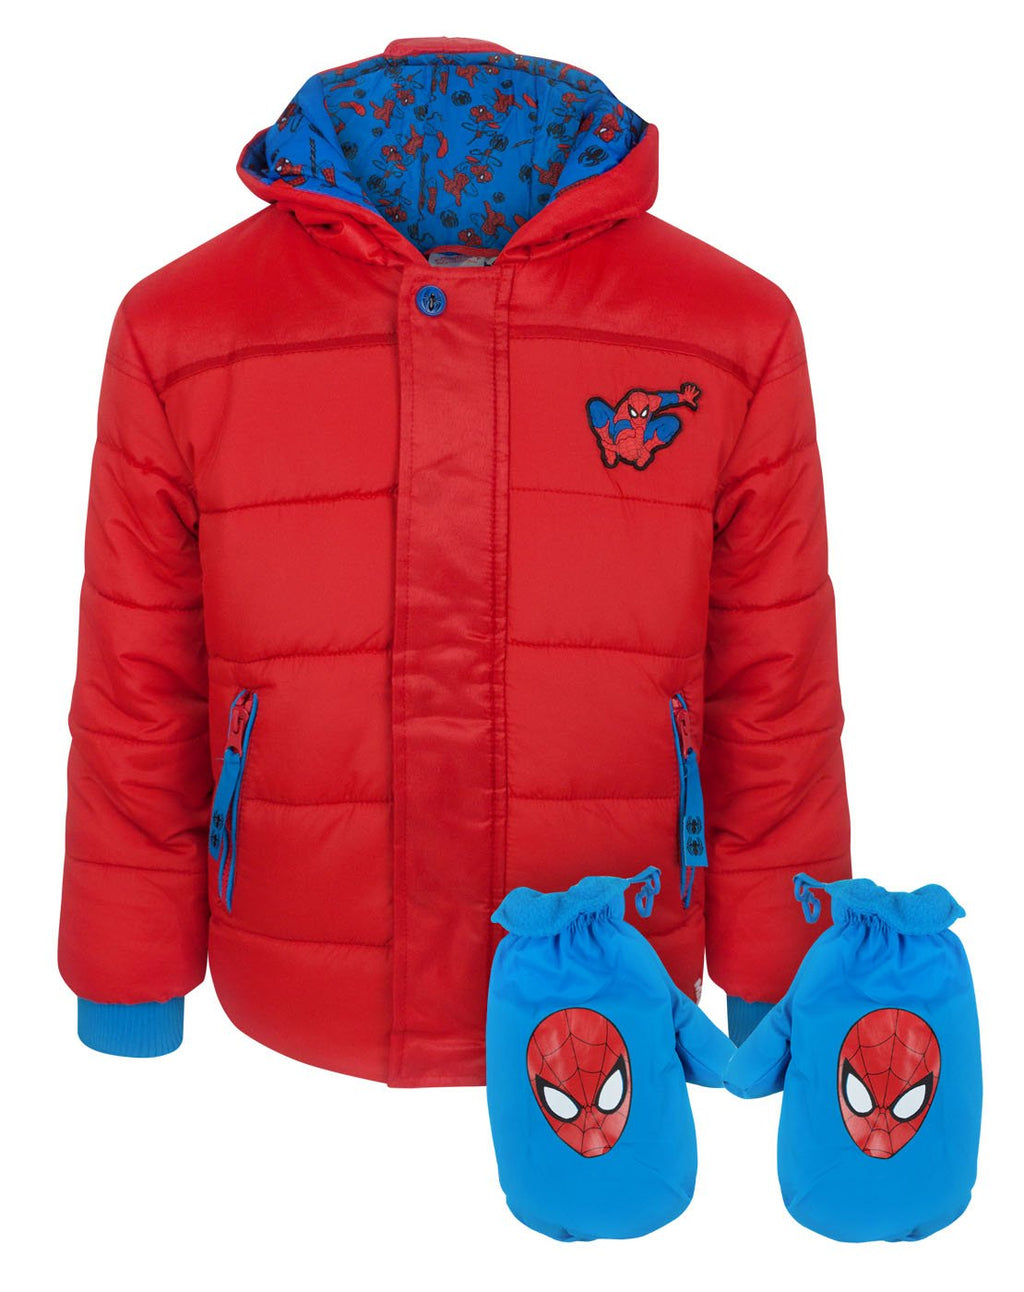 Spider-Man Boy's Red Coat and Mittens Set